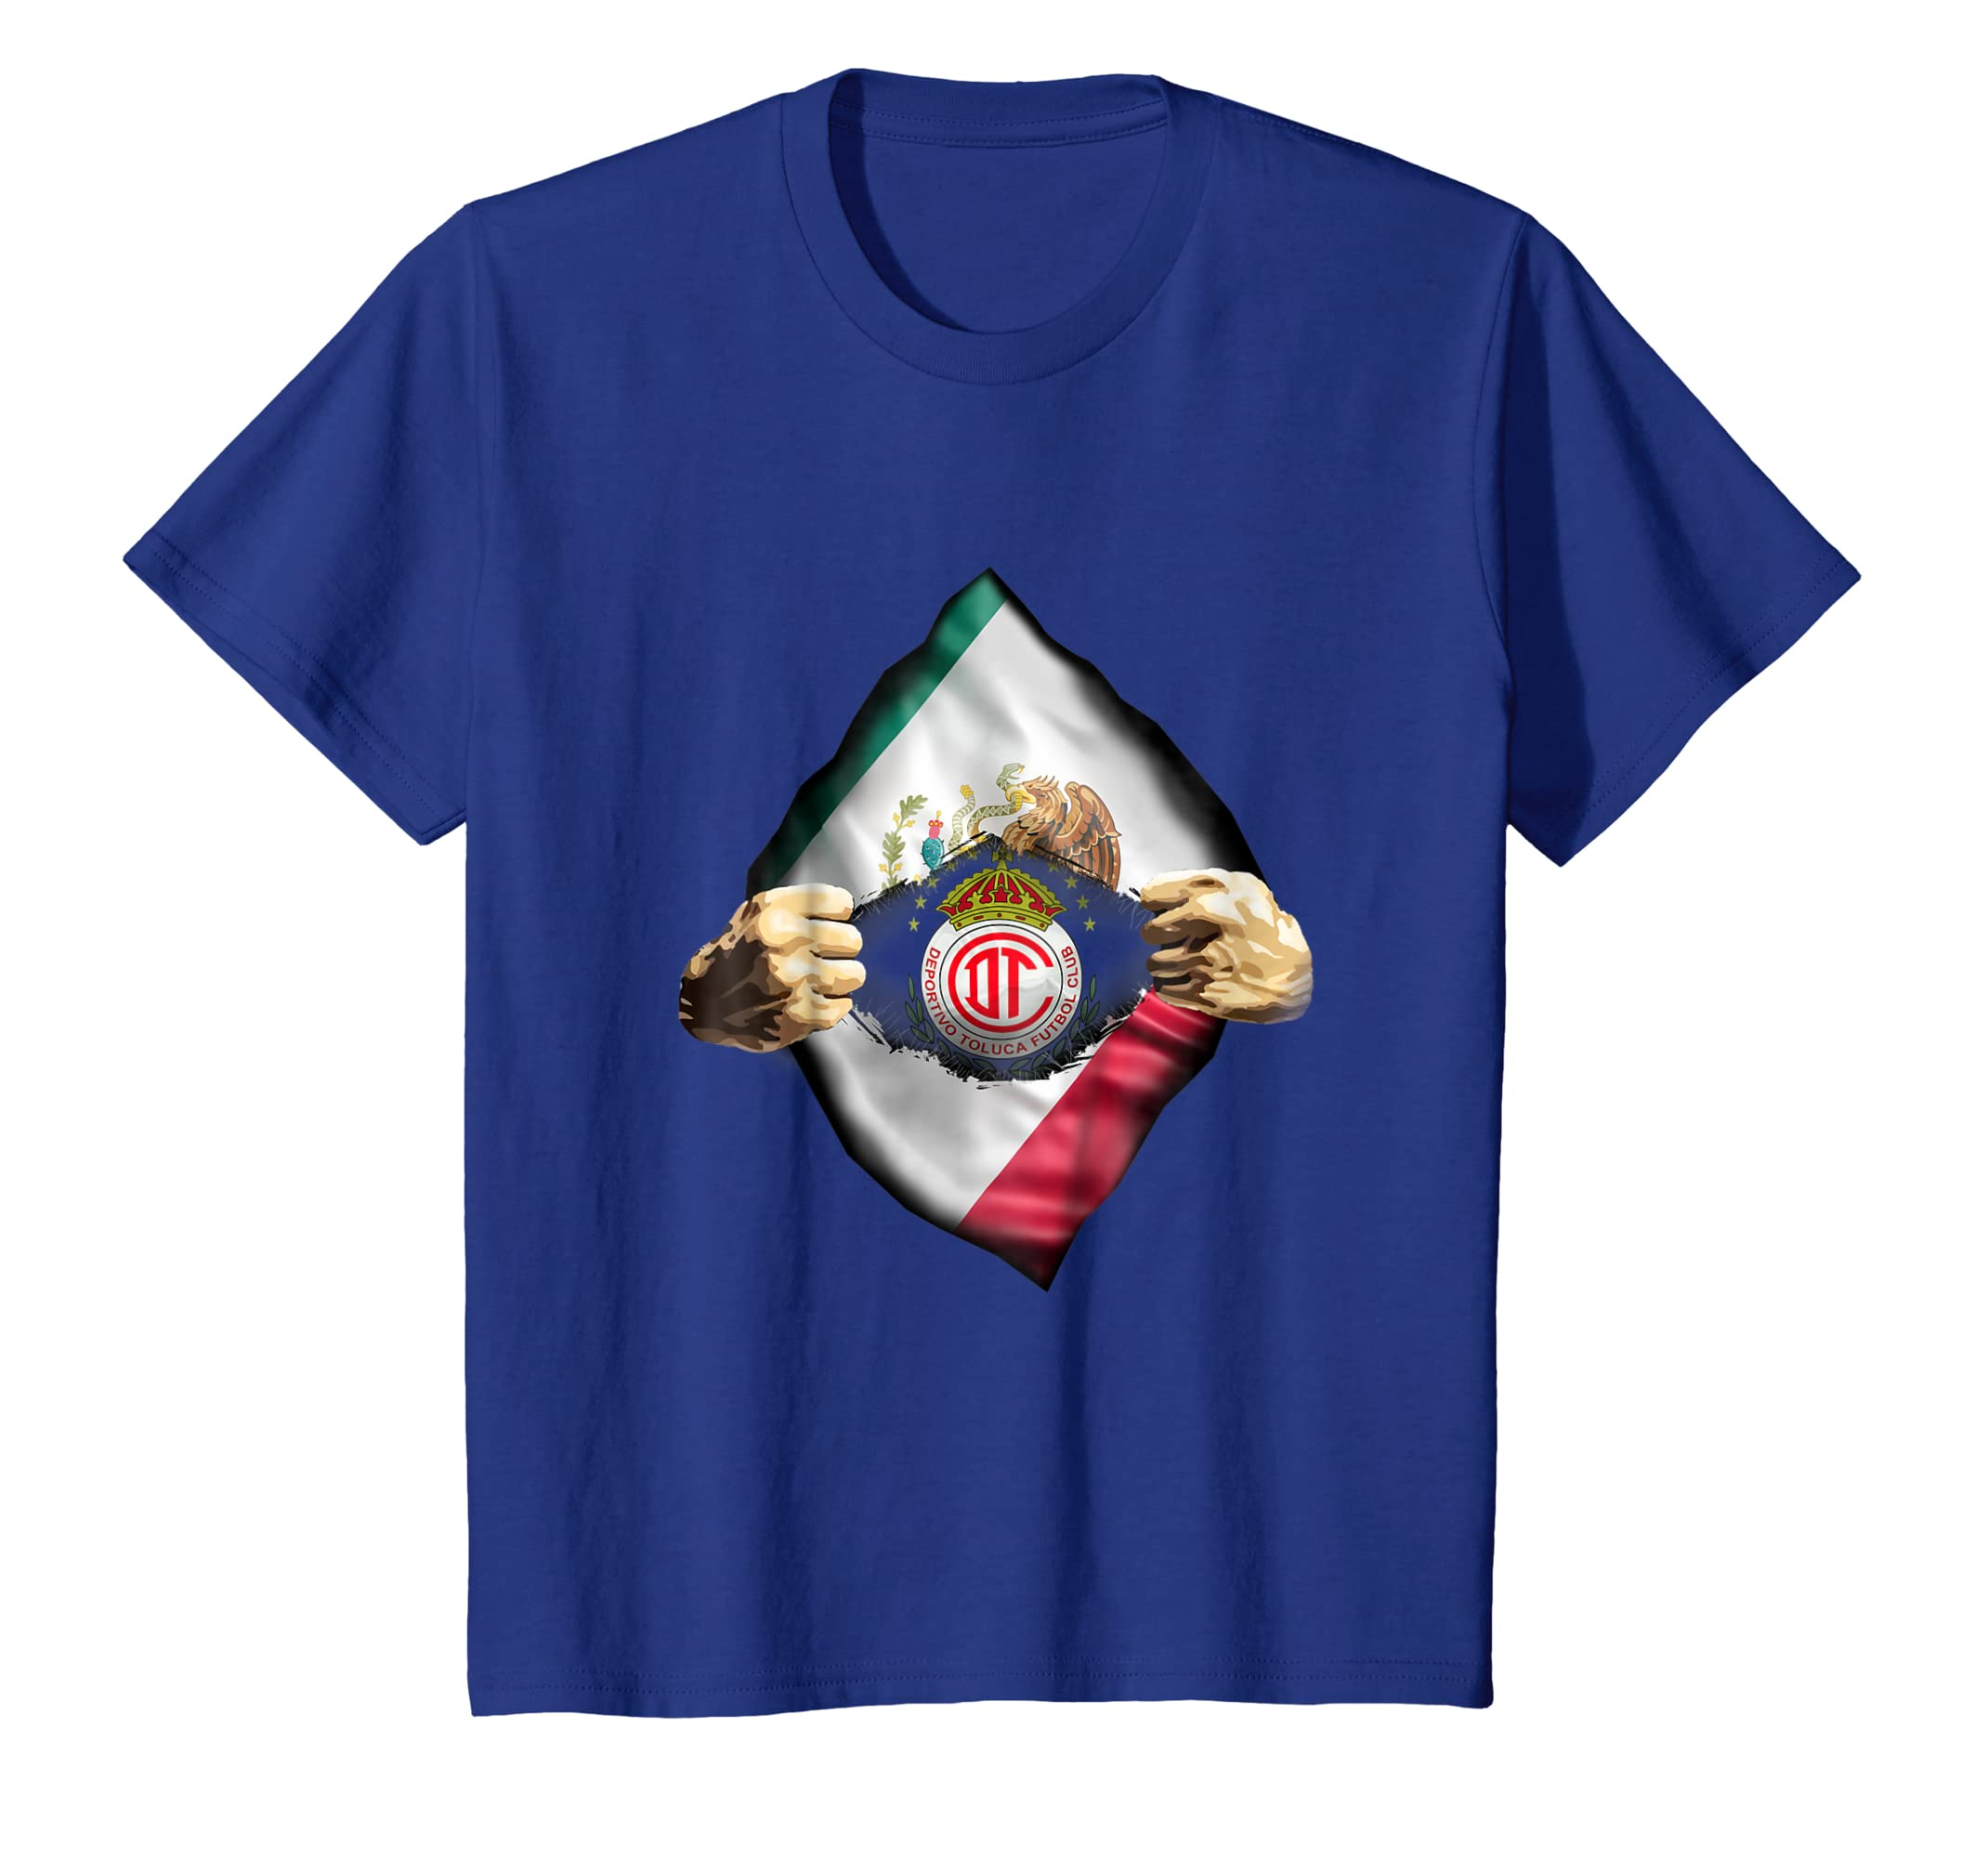 Amazon.com: Toluca Shirt Heartbeat Love Funny Fan- Toluca fc T-Shirt: Clothing